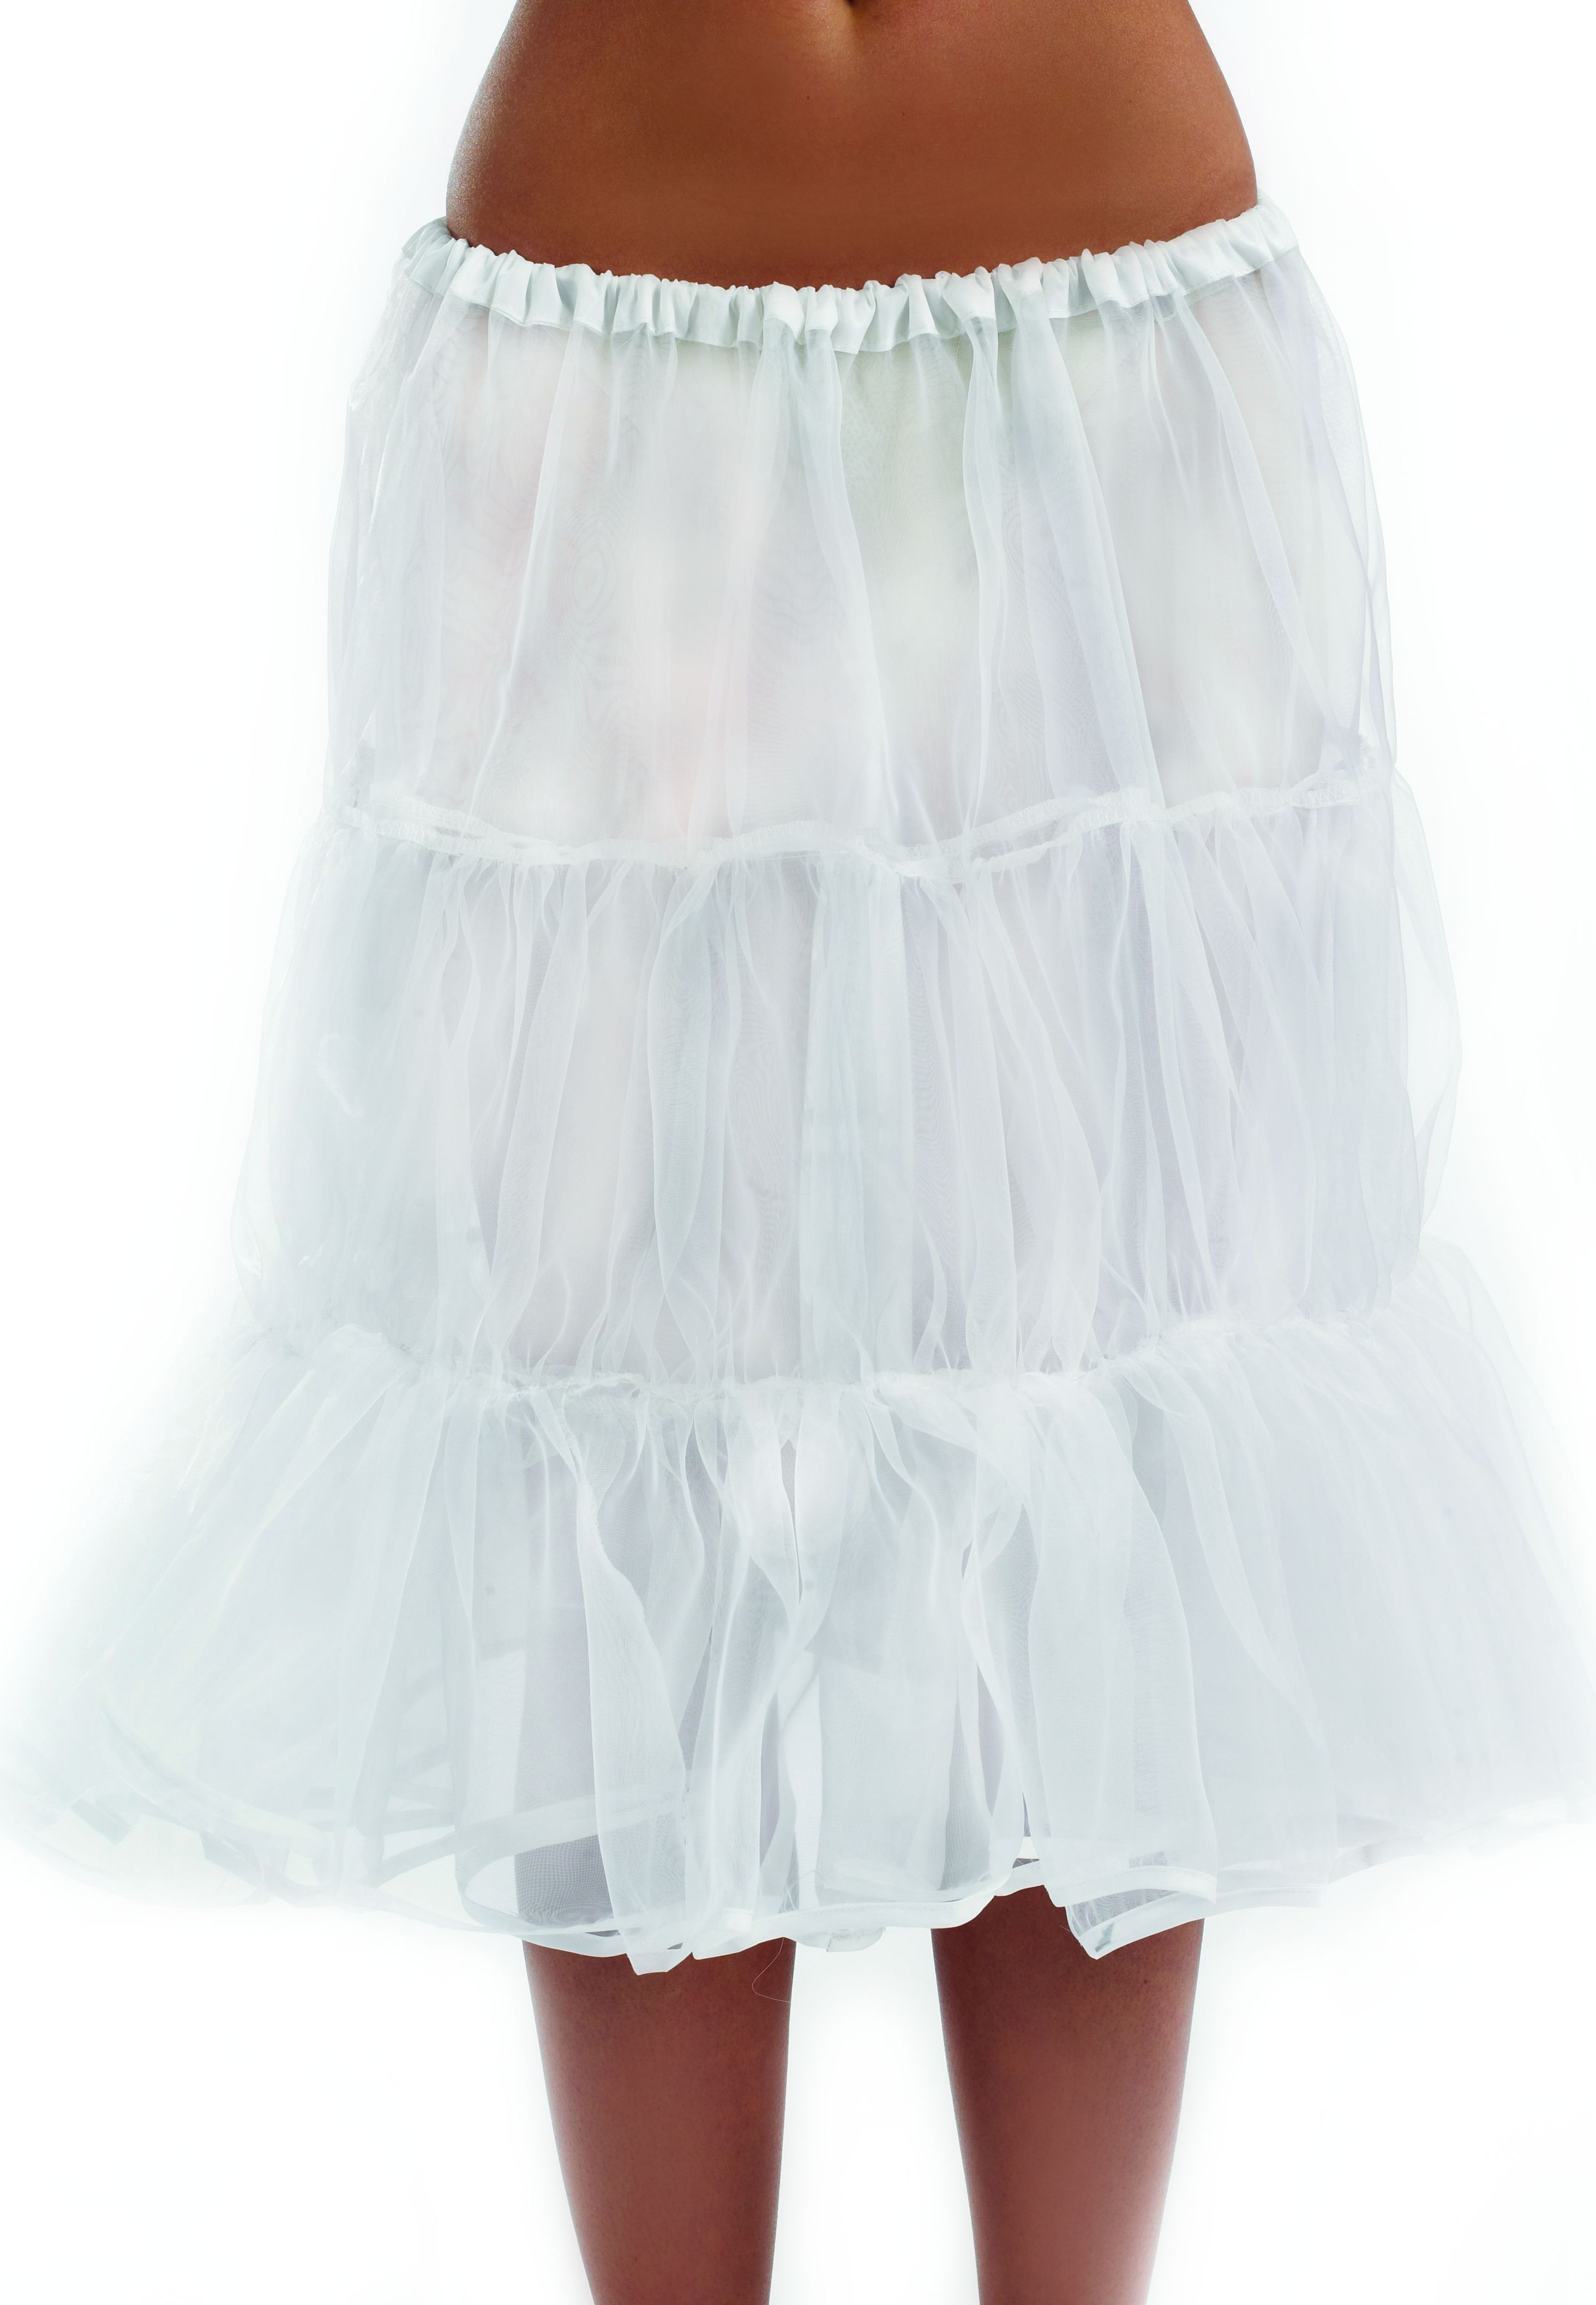 Long White Underskirt (Christmas Fancy Dress)